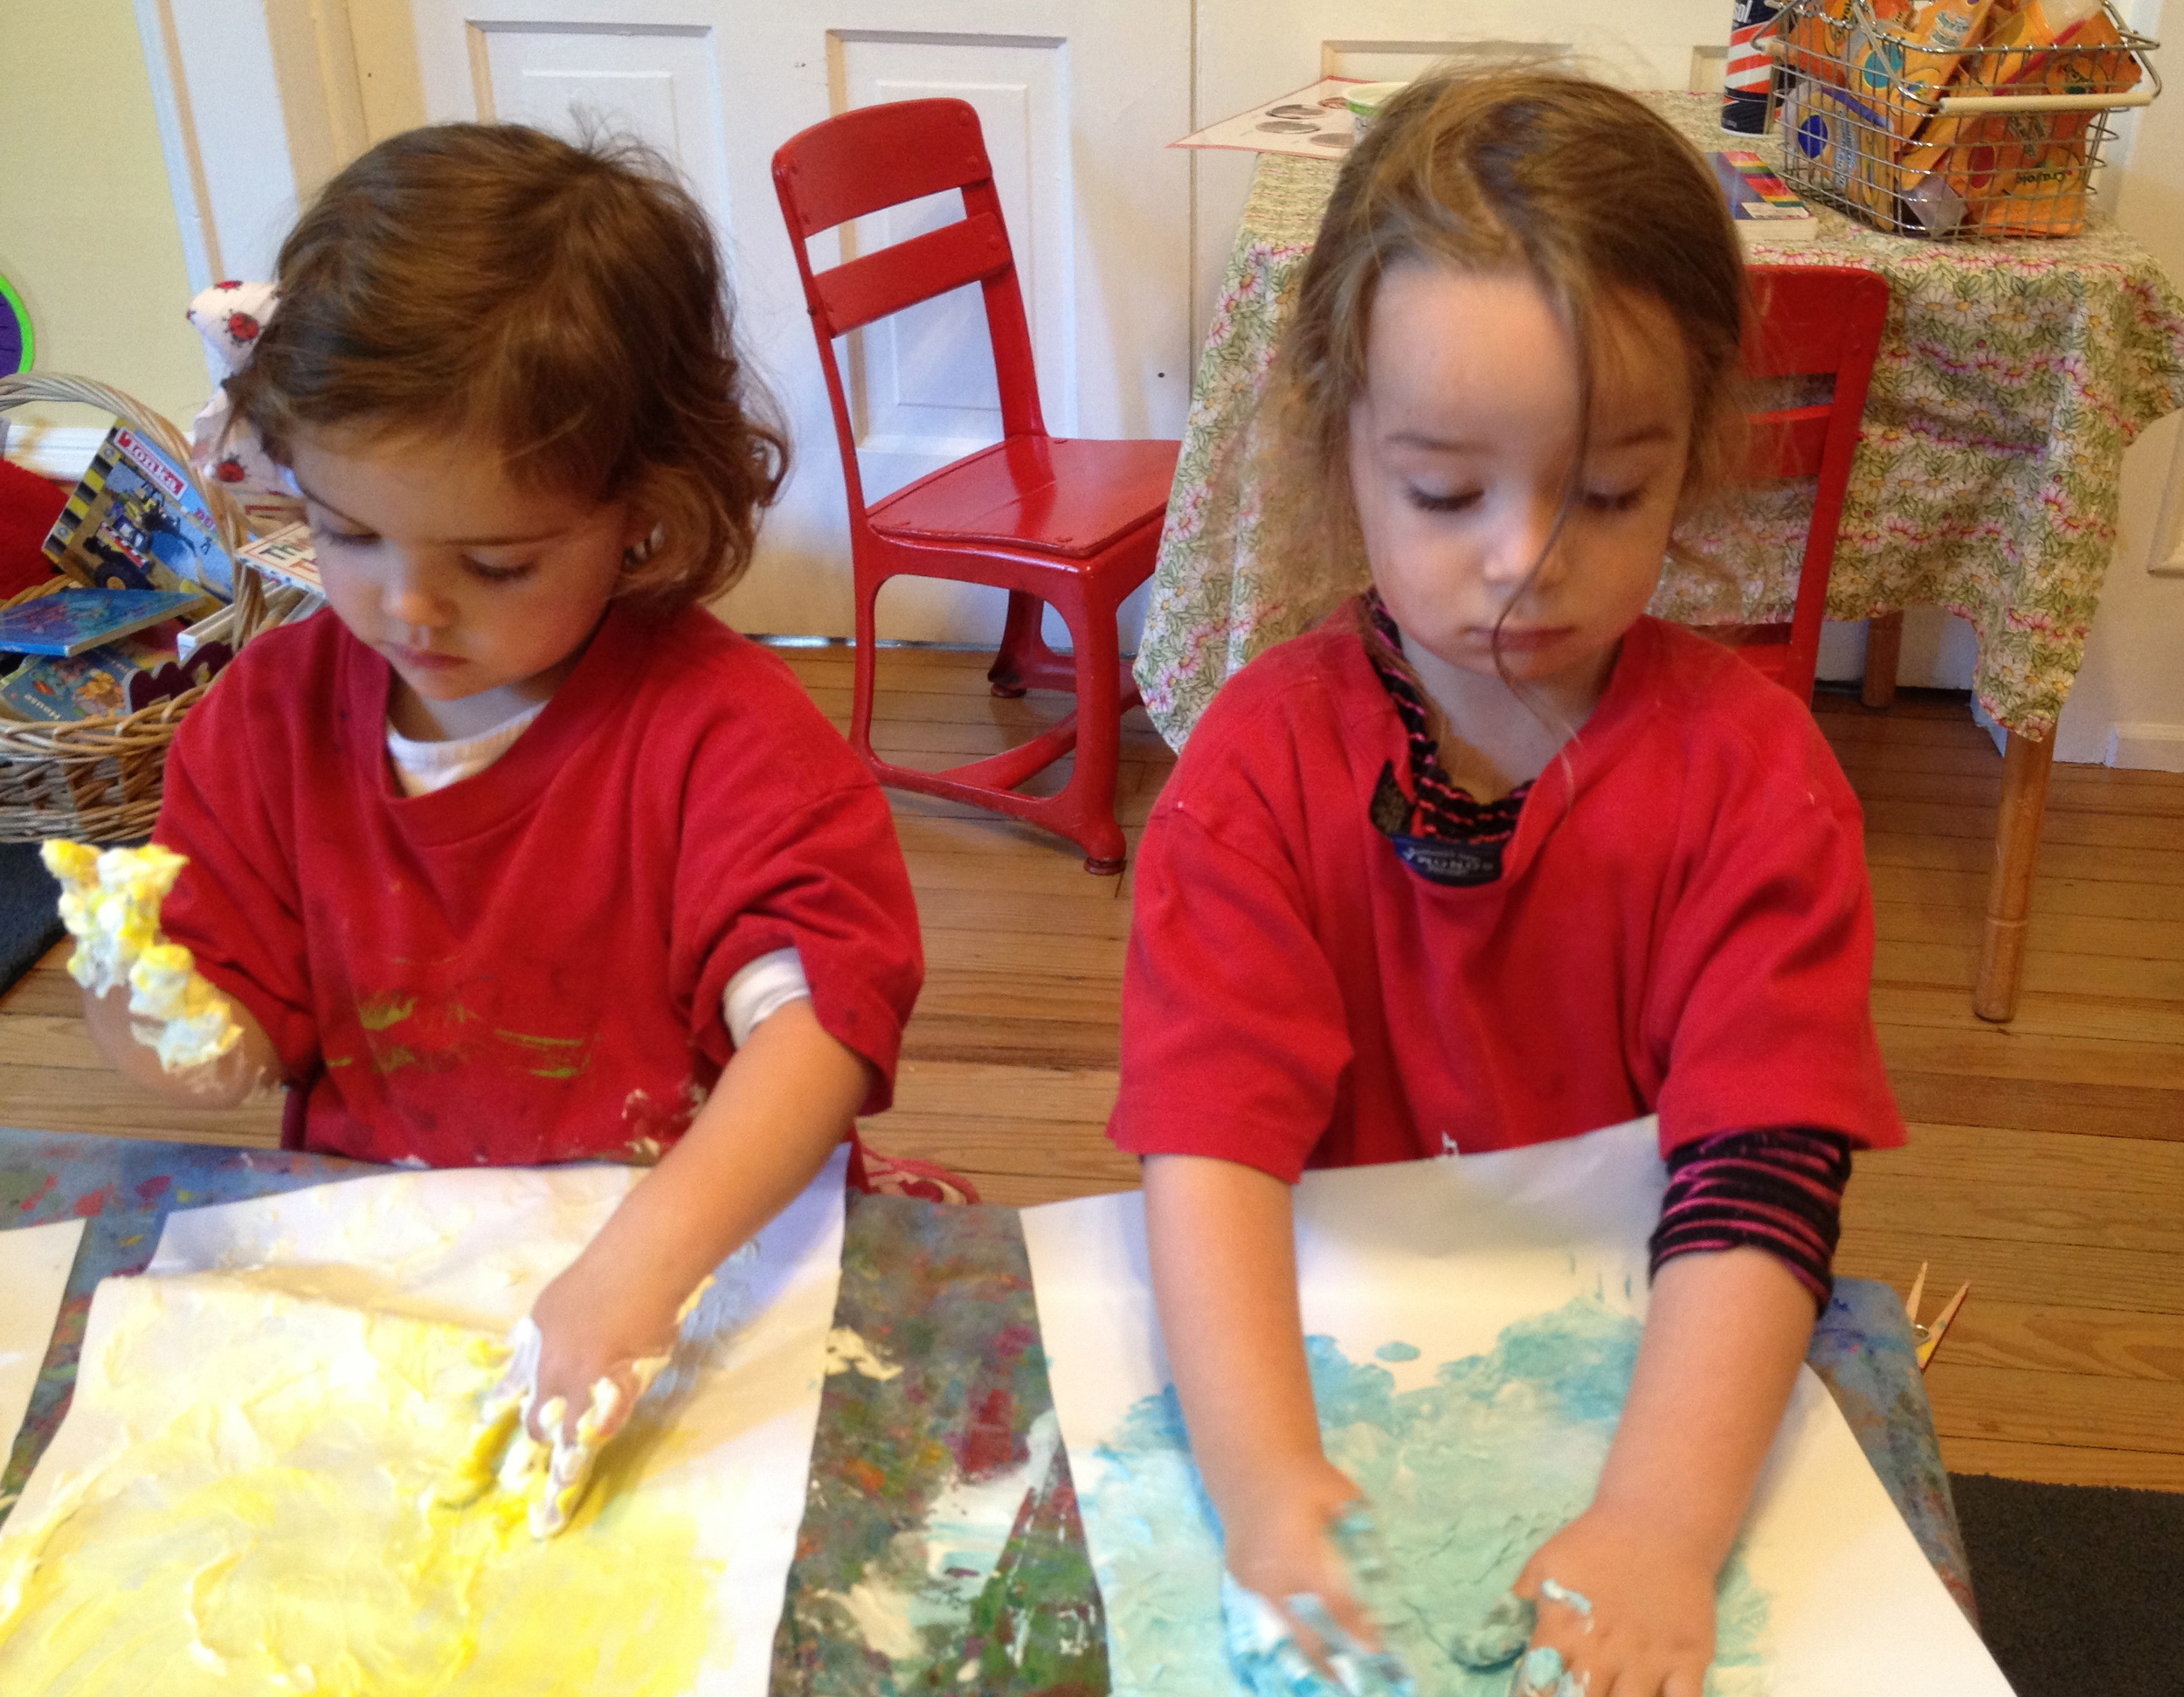 Painting with shaving cream